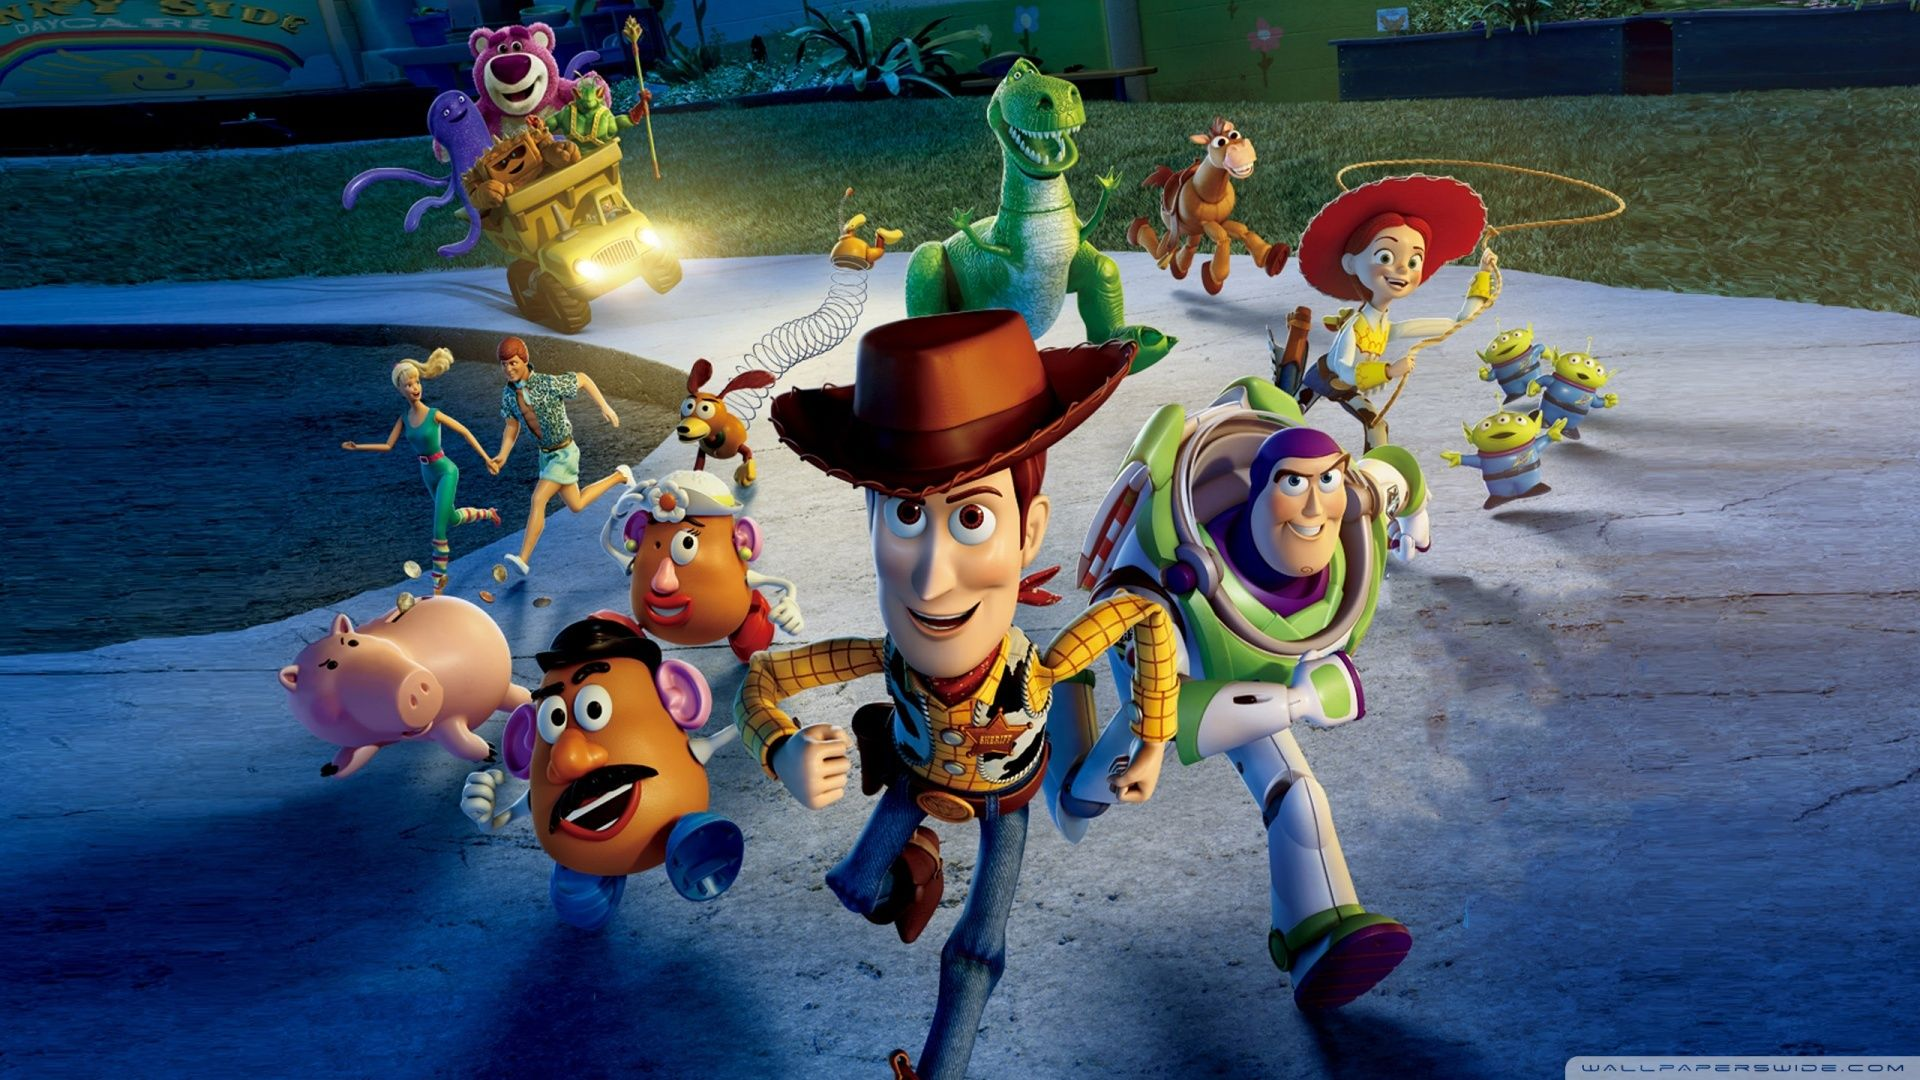 toy story wallpapers hd | hd wallpapers | pinterest | hd wallpaper